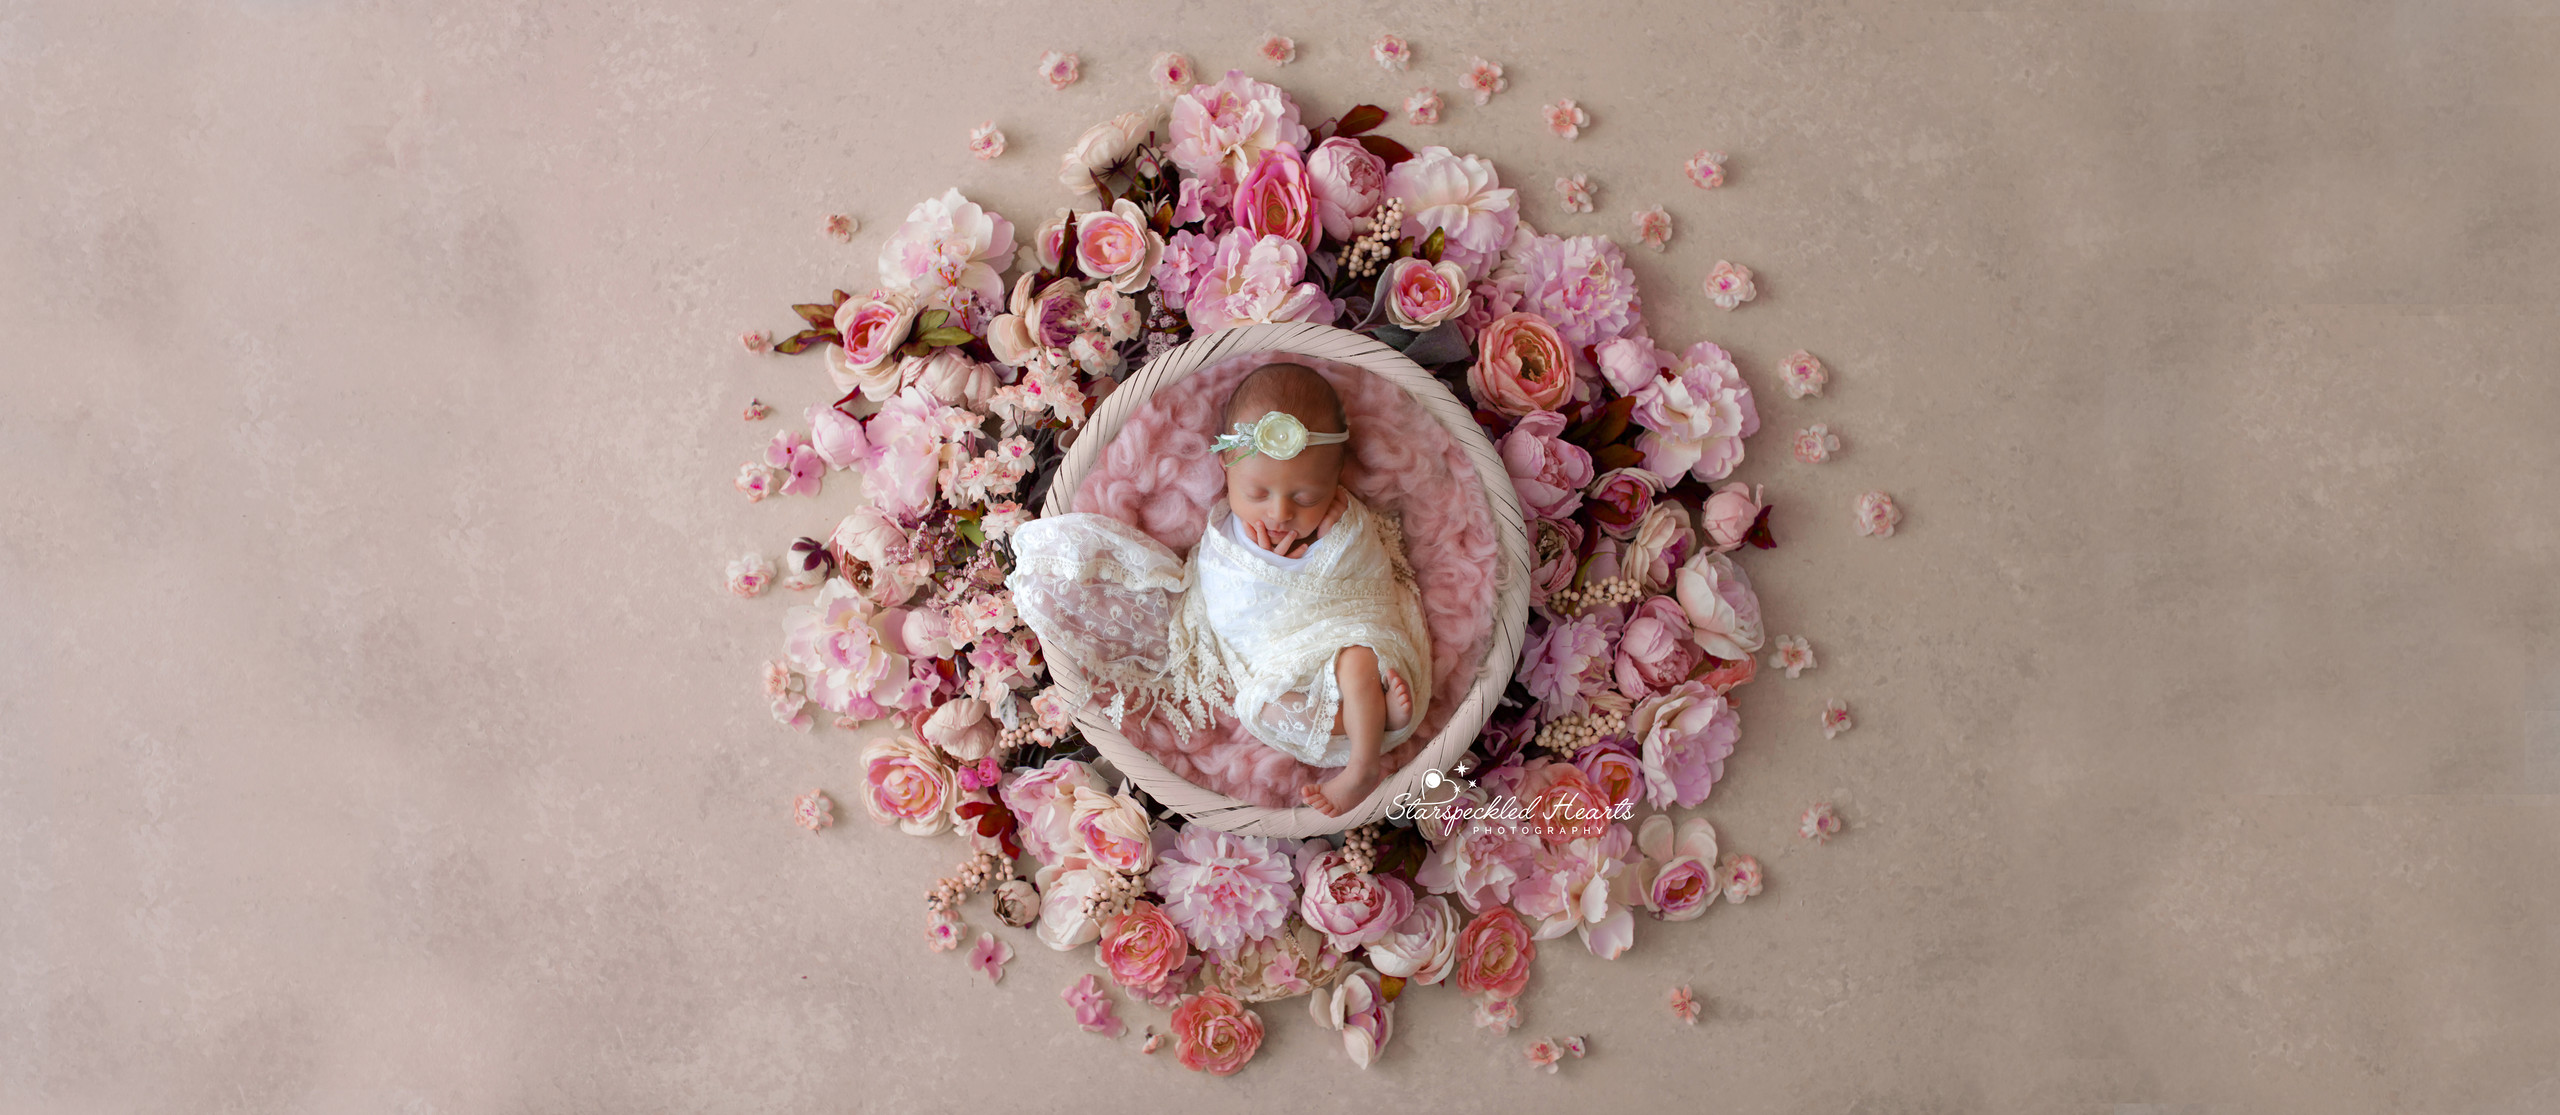 beautiful newborn girl lying in a bowl surrounded by pink roses and flowers